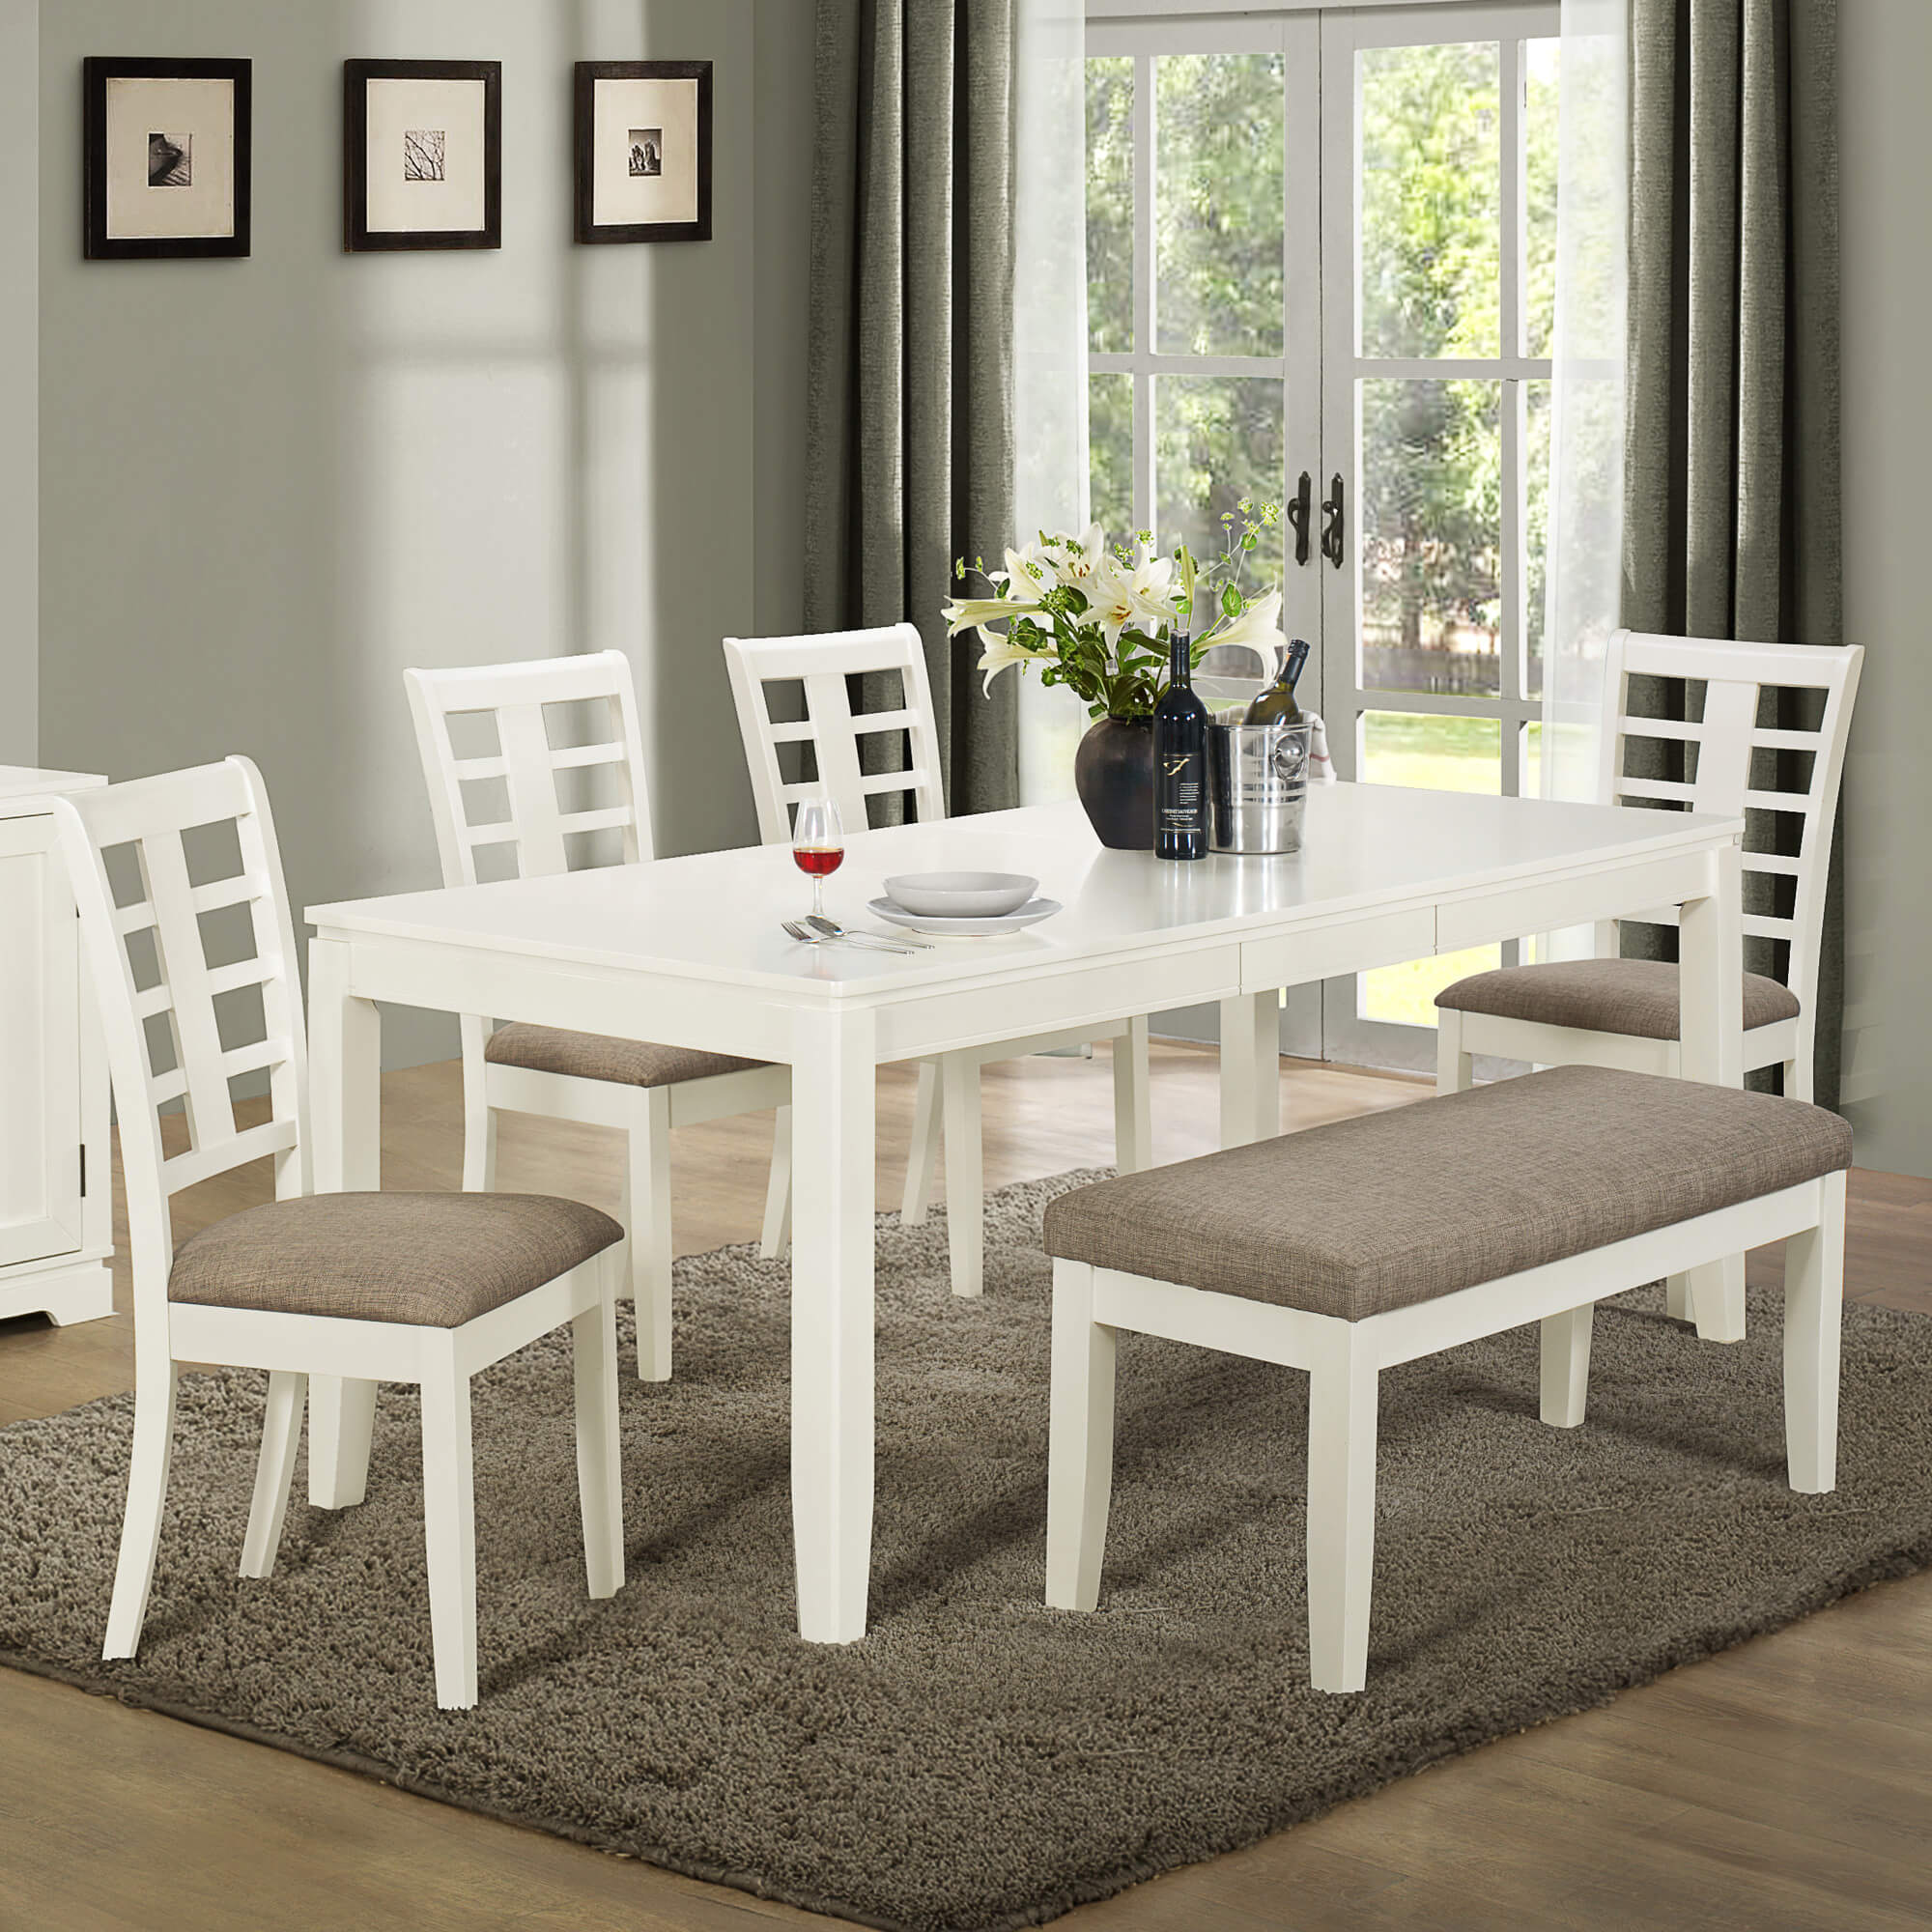 26 big small dining room sets with bench seating for Small white dining room sets